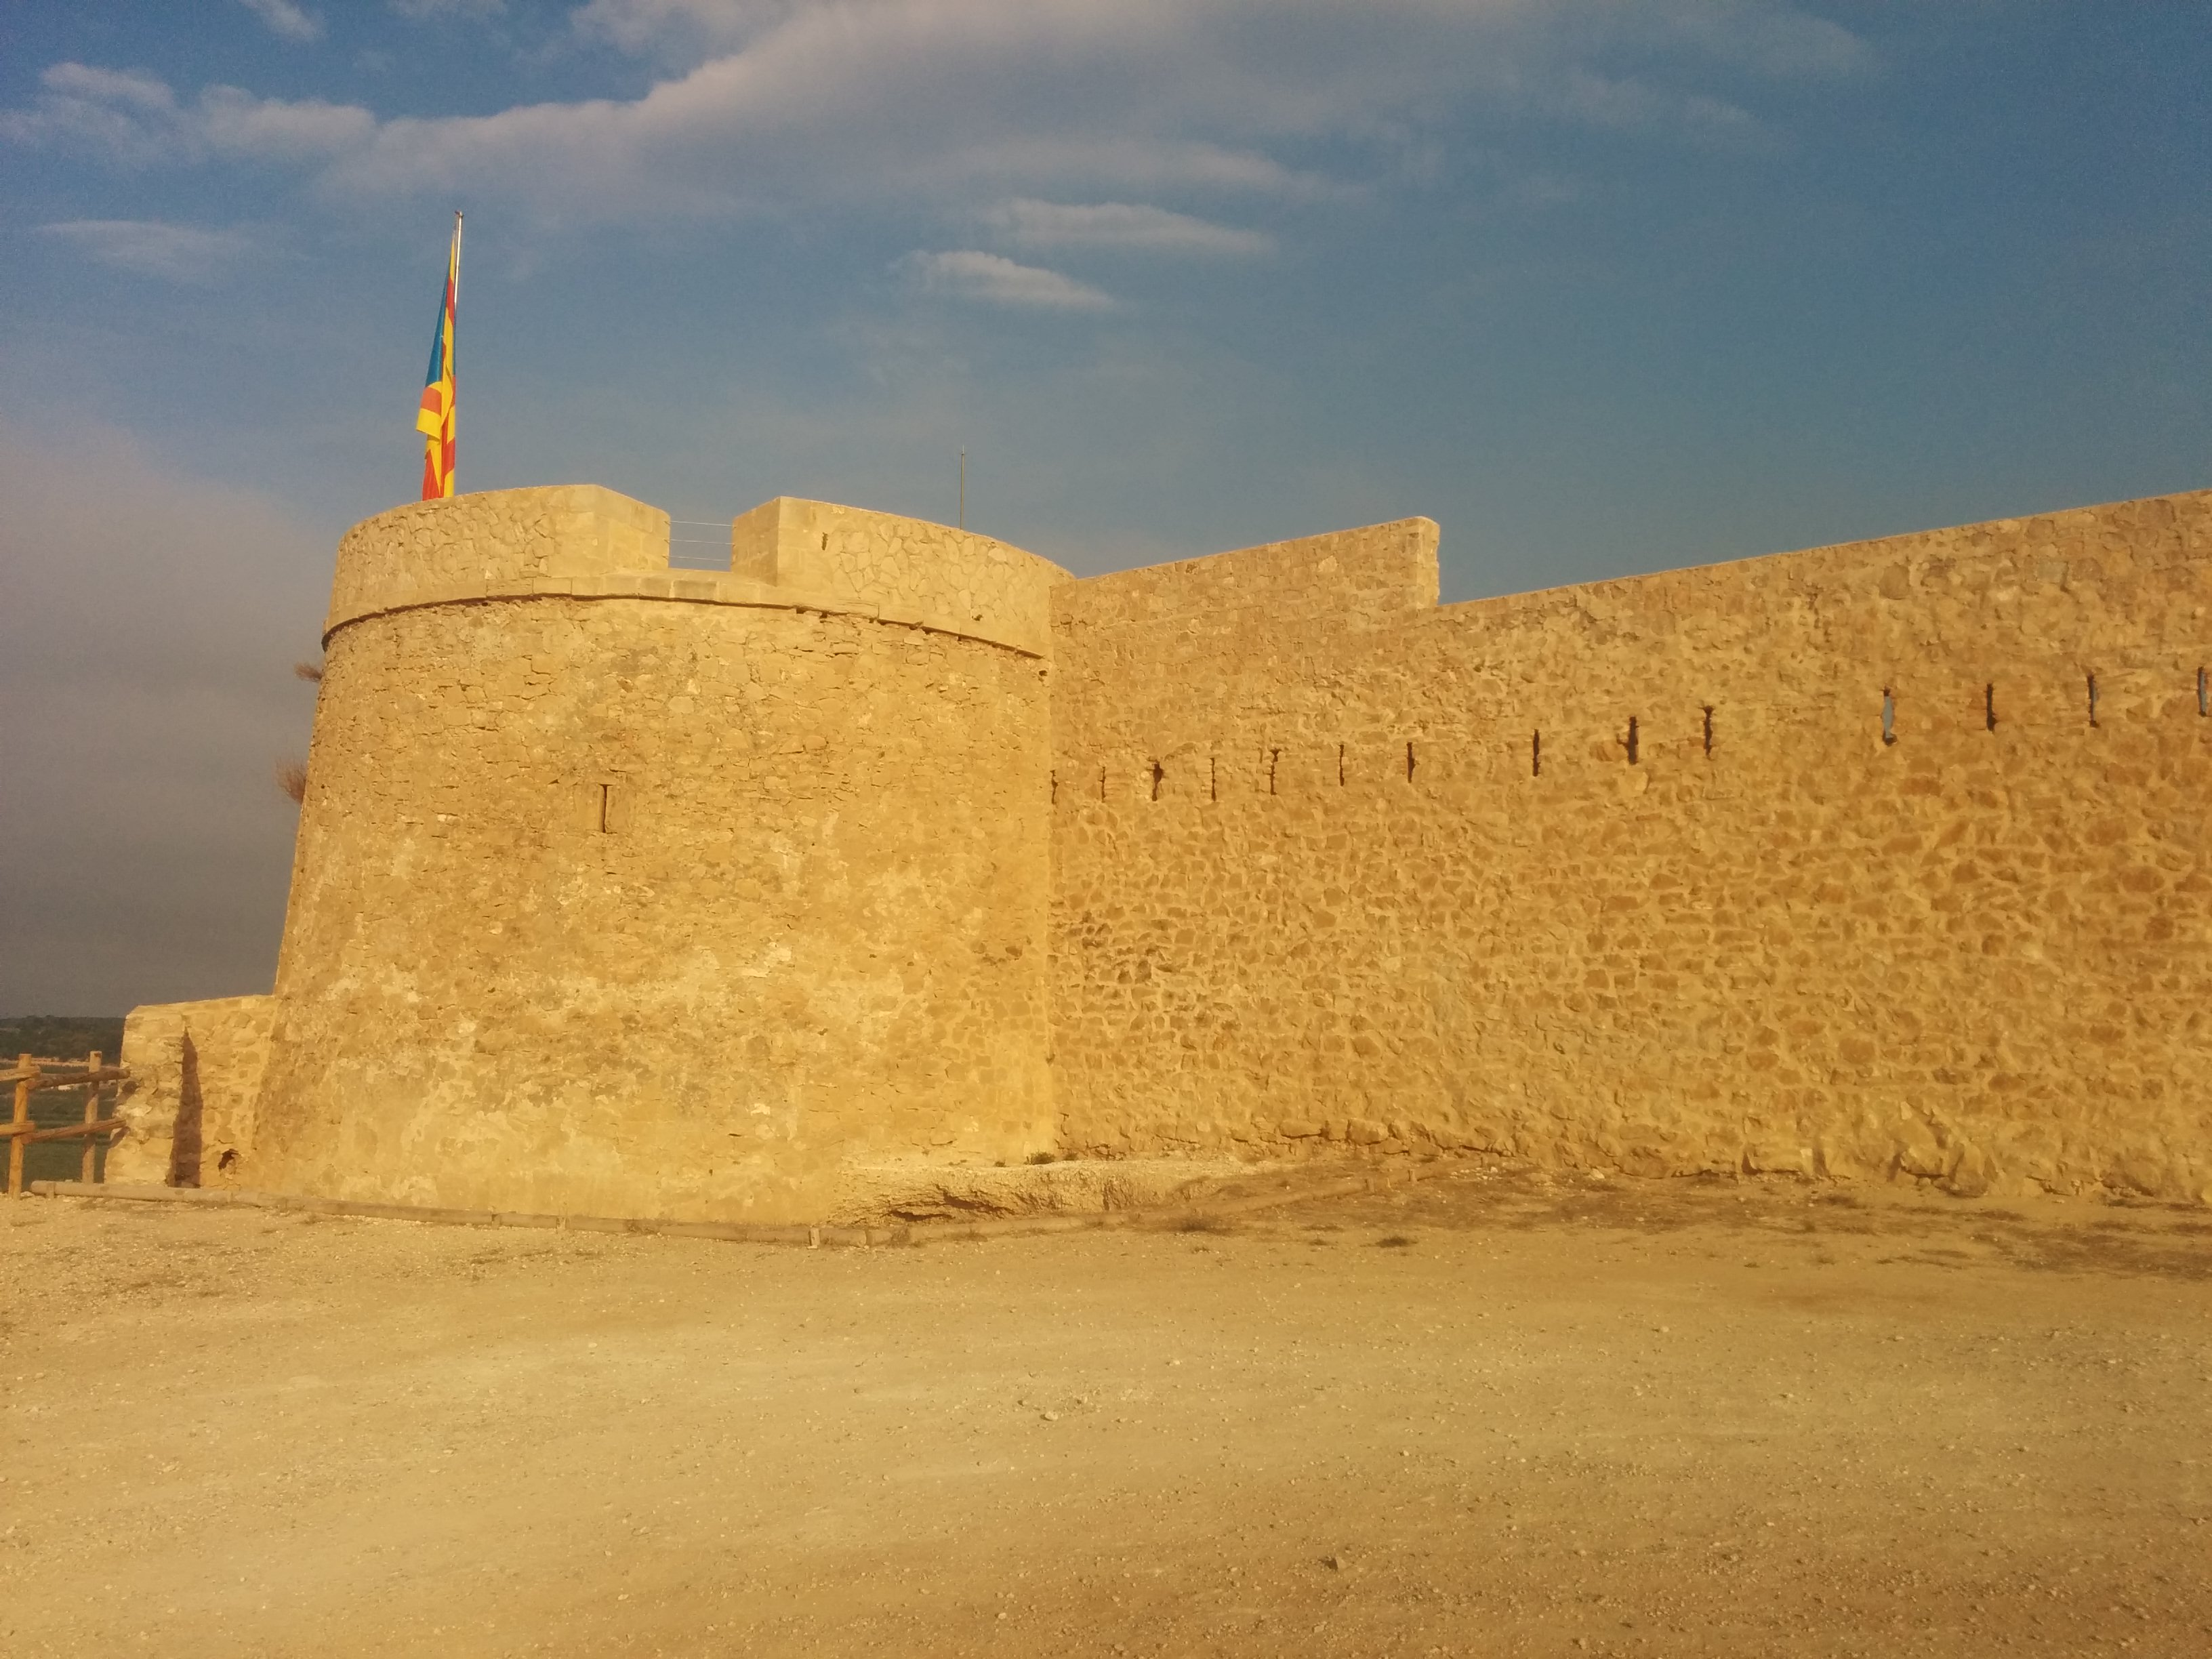 fileflix castell or flix castle or fort in catalonia 29 sept 2015 5